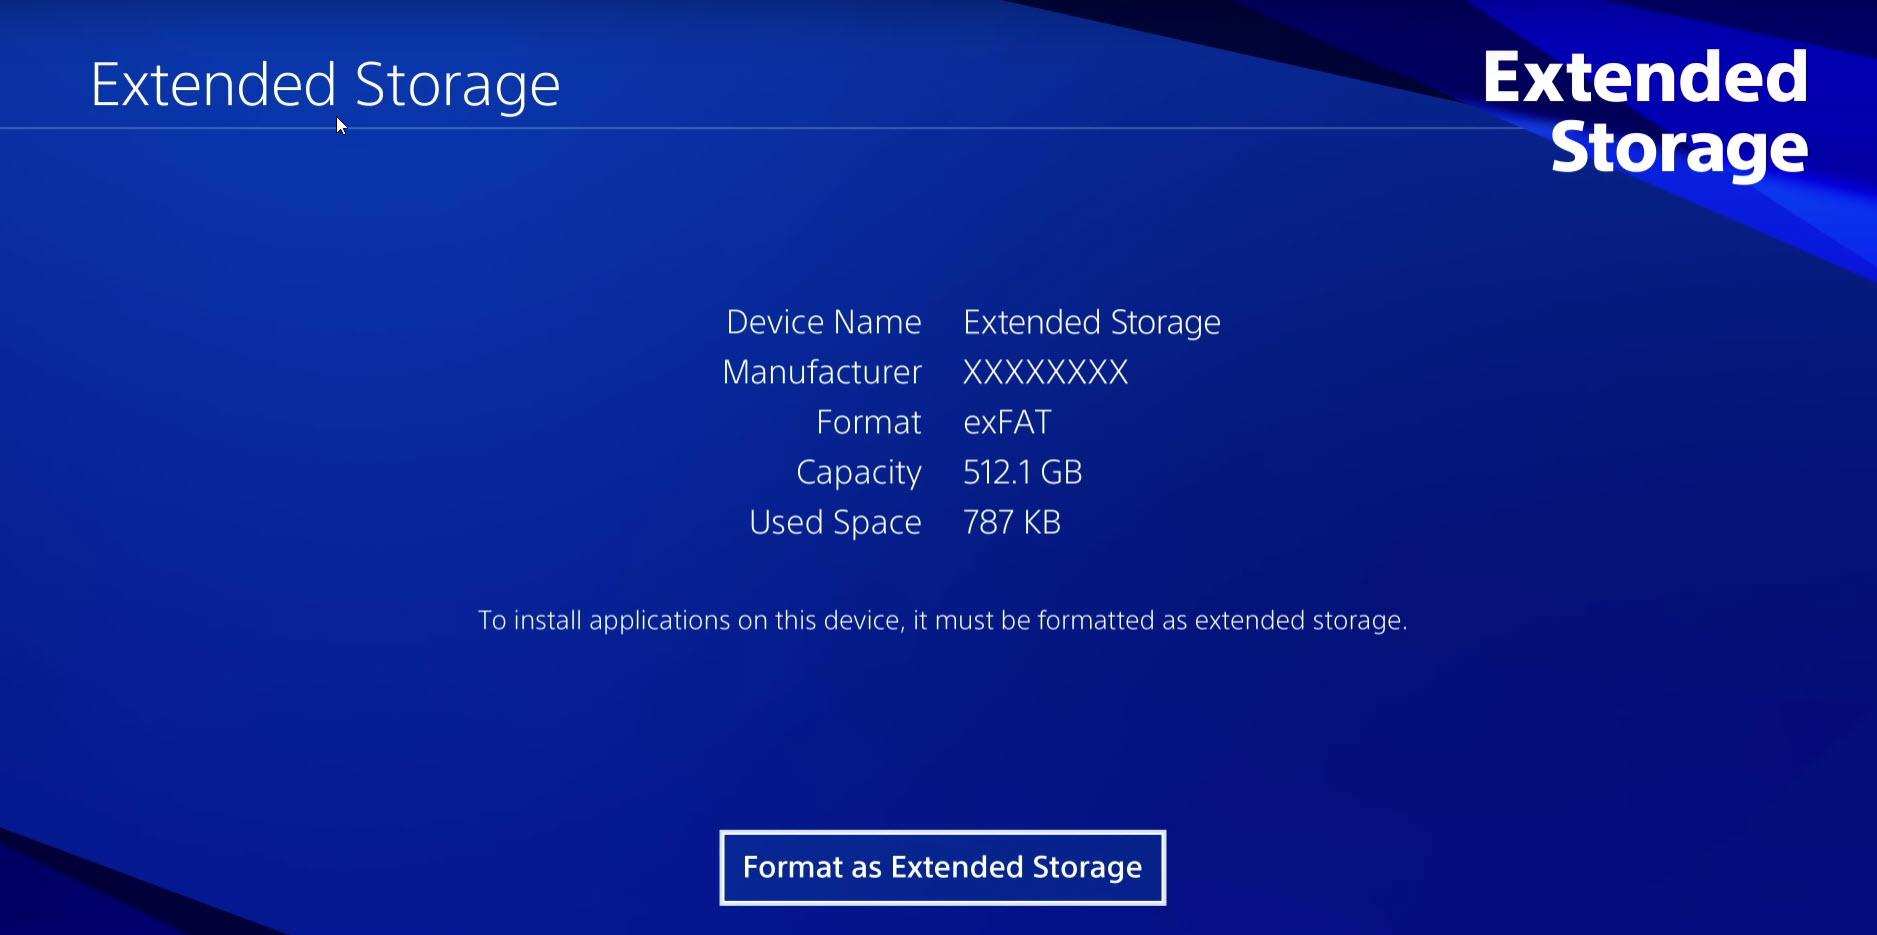 How to connect an external hard drive to a PS4 PRO